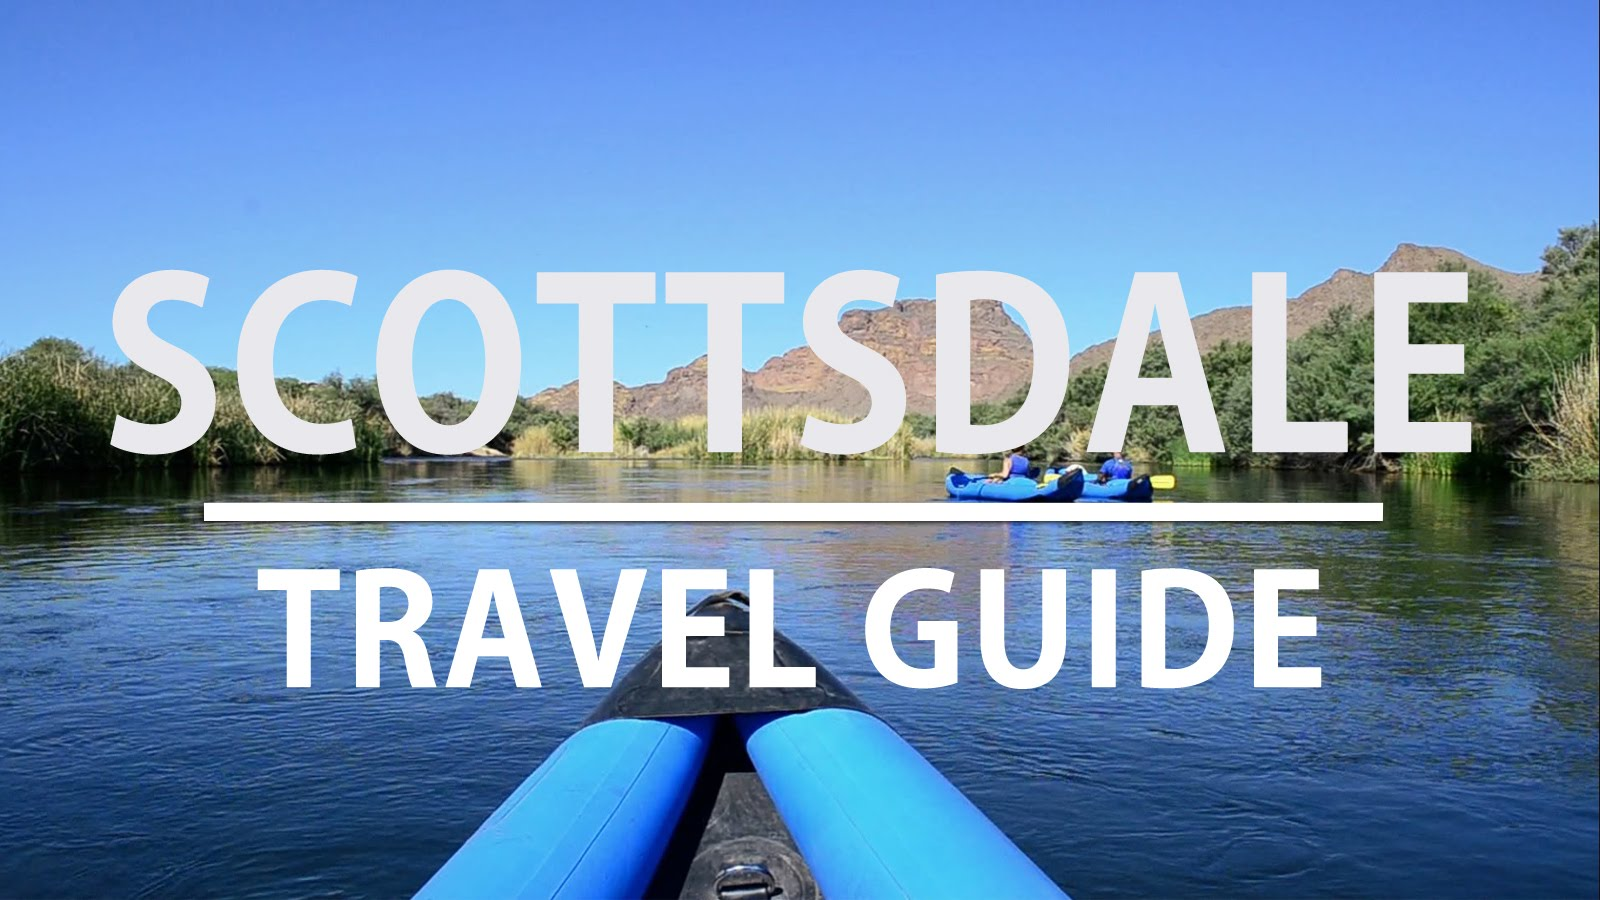 Video Travel Guide to Scottsdale, Arizona